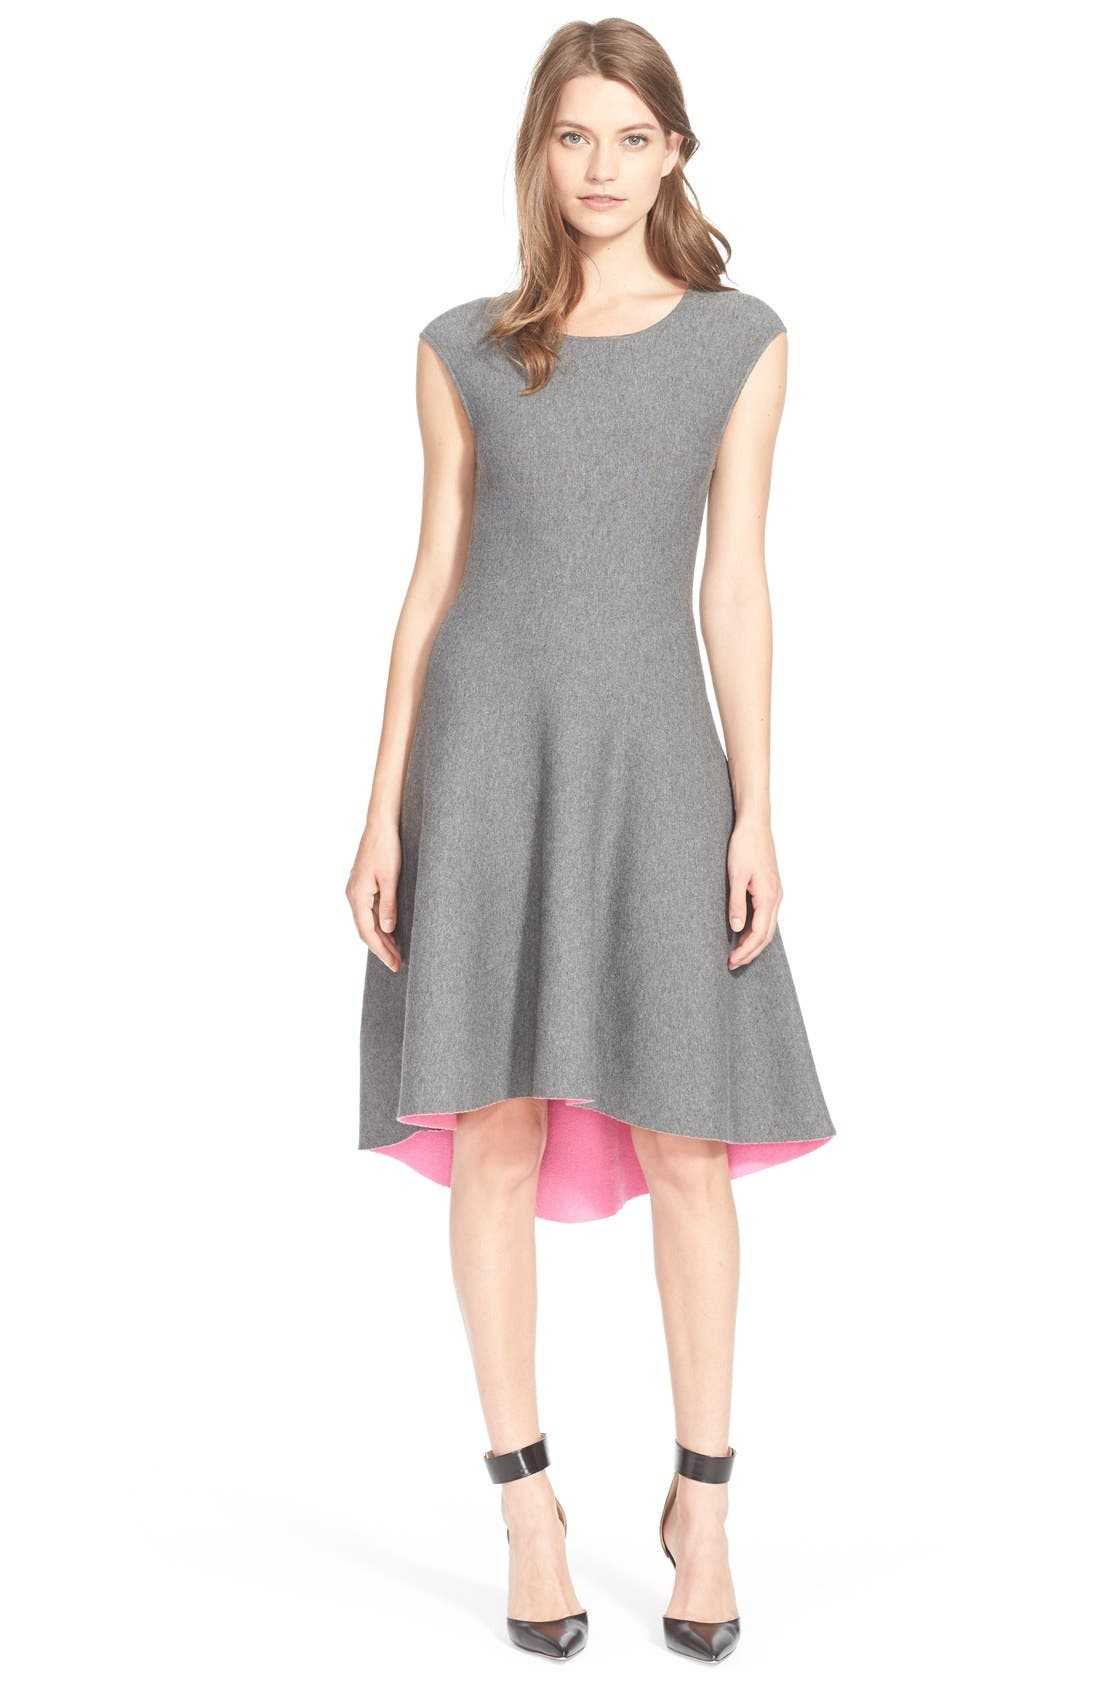 Alternate Image 1 Selected - Milly Reversible Fit & Flare Dress